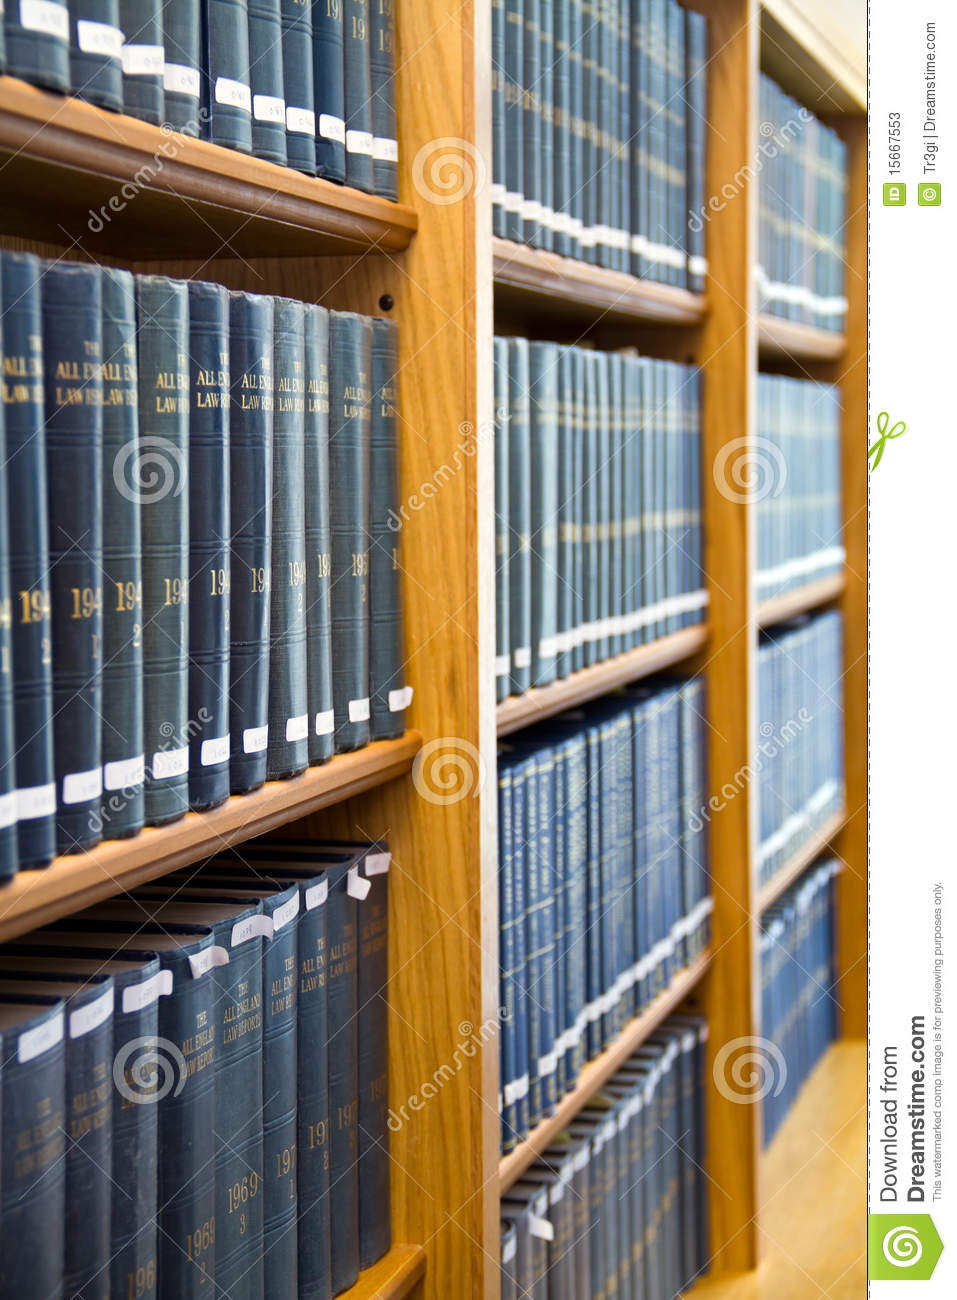 Blue Law Books Stacked On The Bookshelf